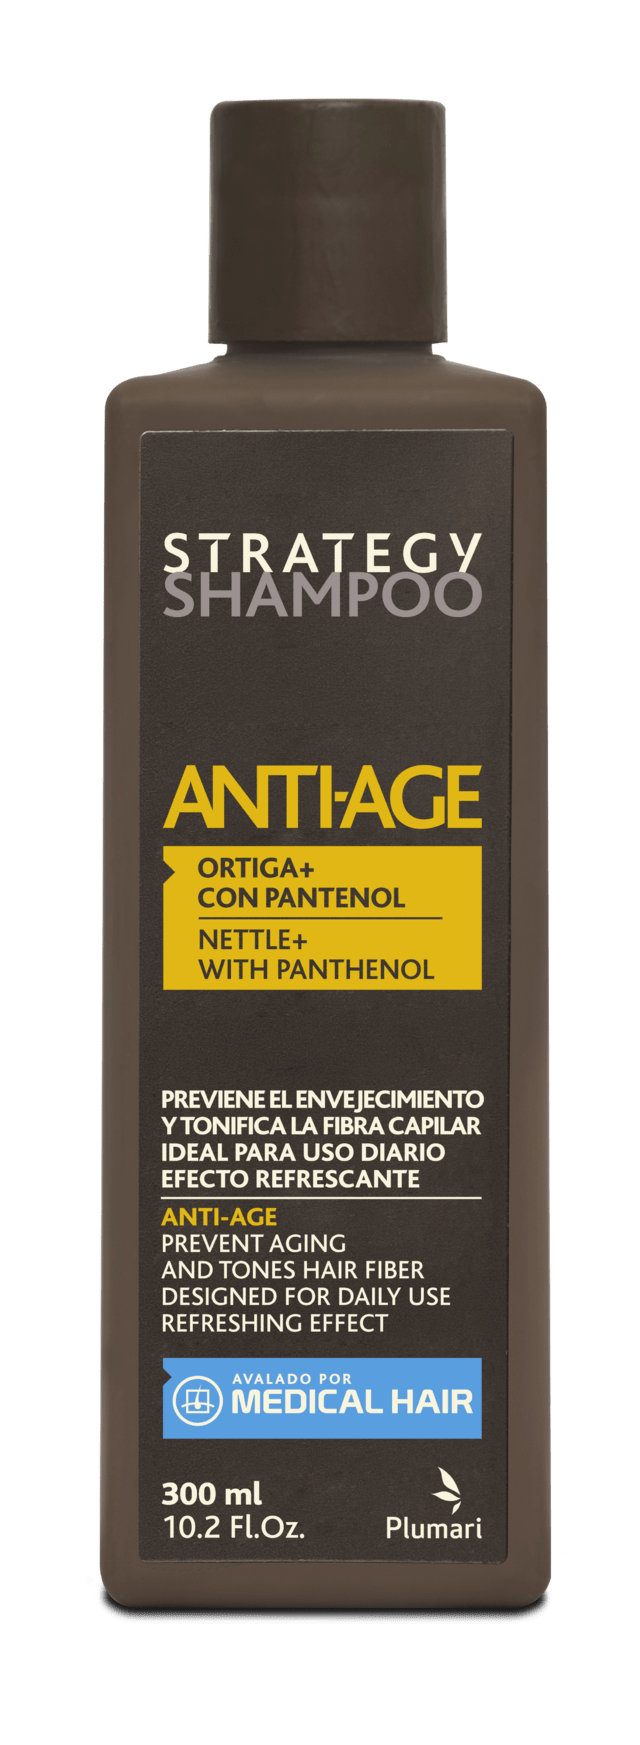 Strategy shampoo anti age